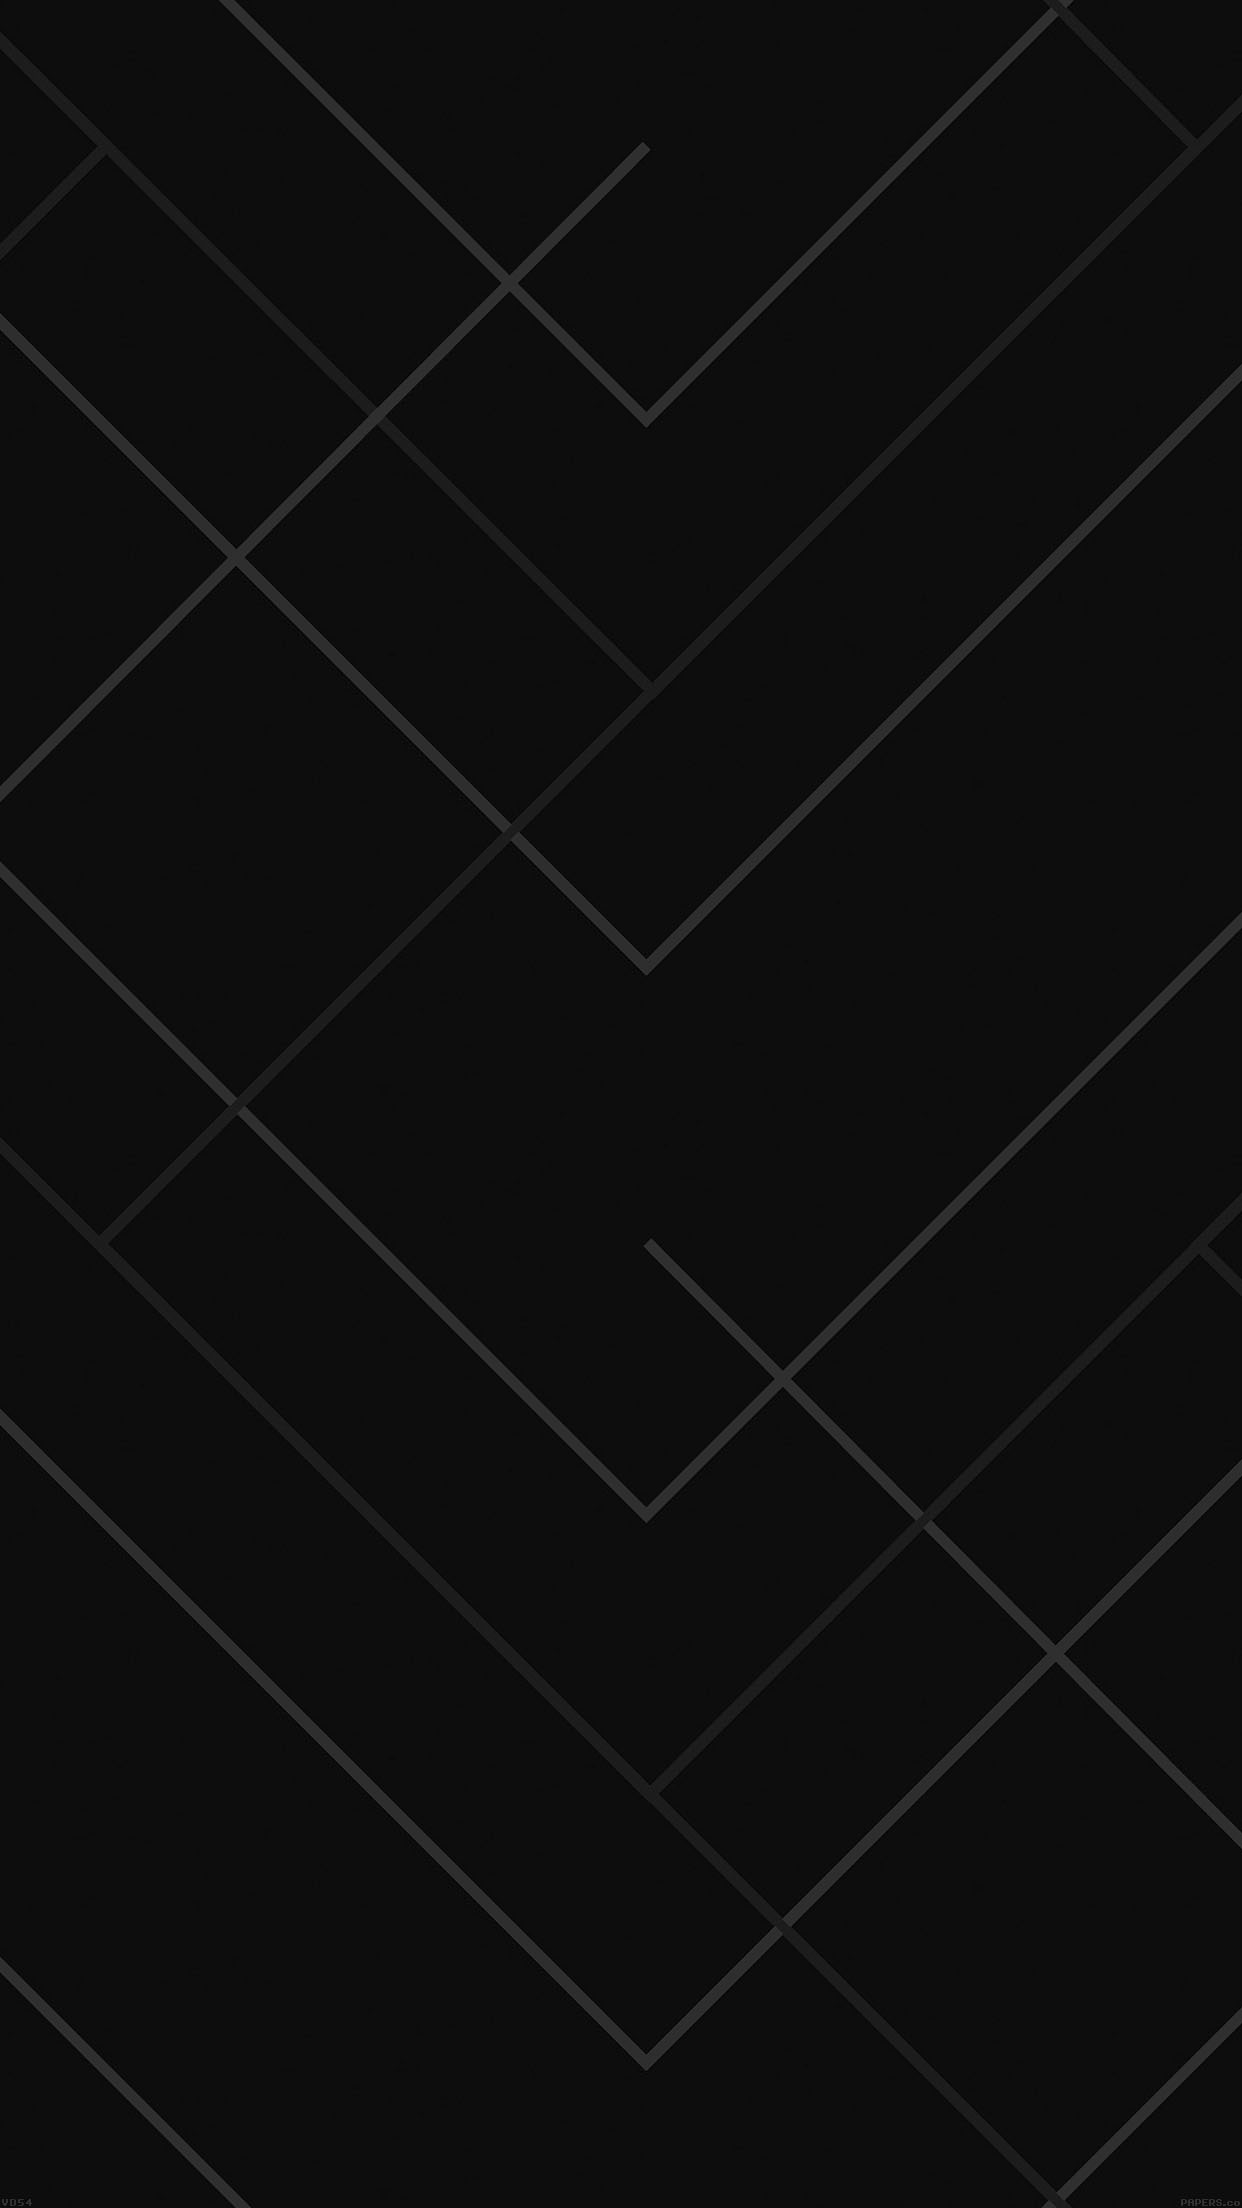 Abstract Black Geometric Line Pattern Android Wallpaper